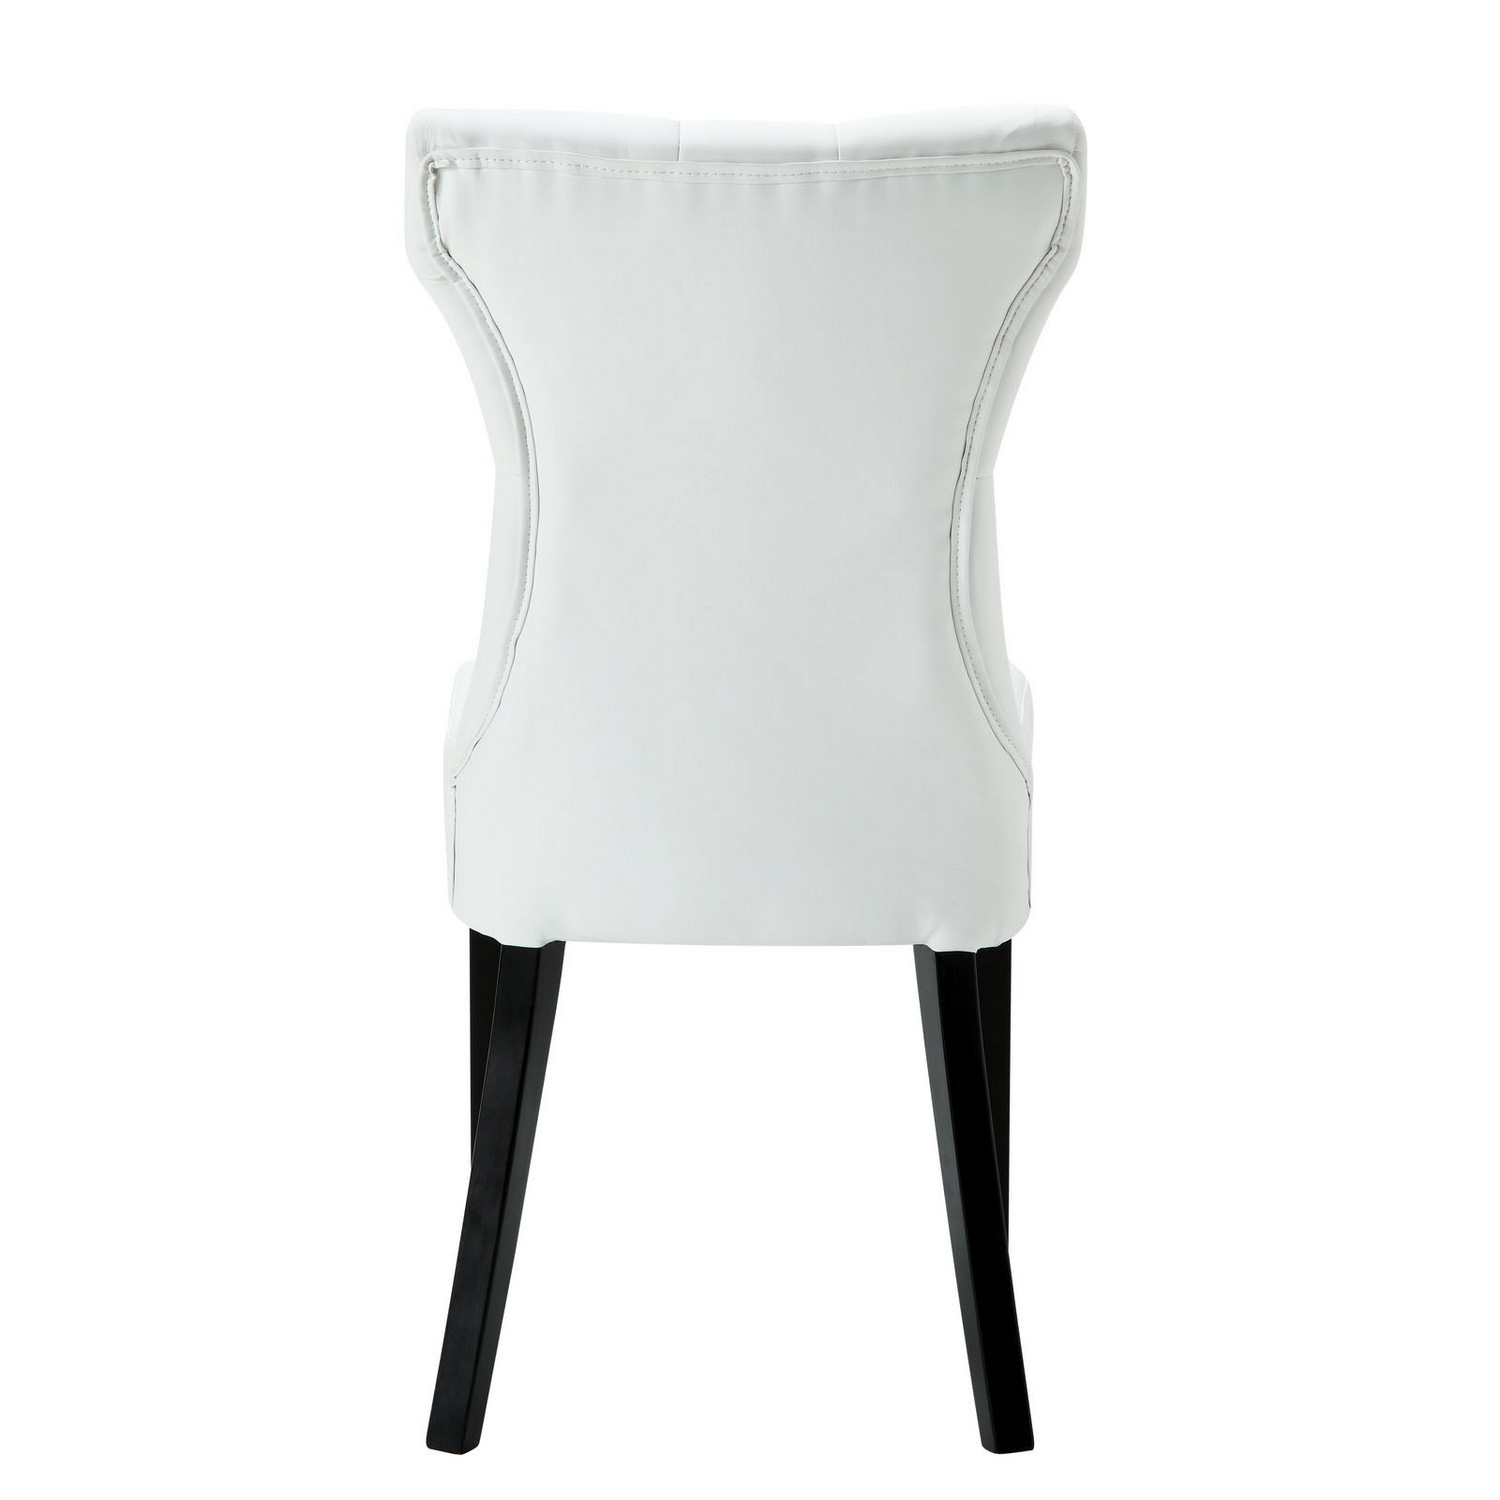 Modway Silhouette Dining Chairs Set of 2 - White